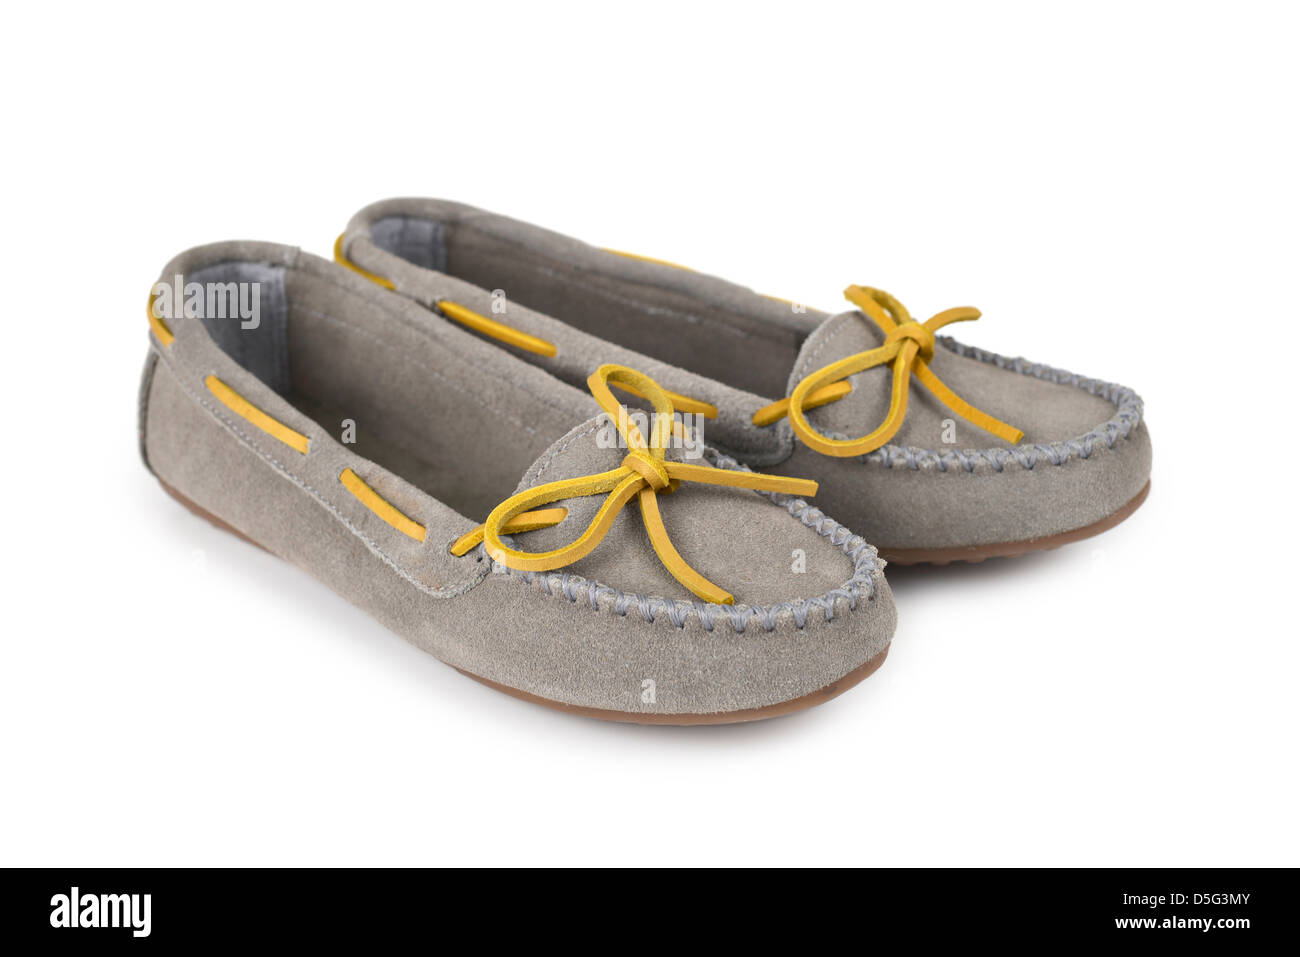 Loafers, Women's Shoes - Stock Image